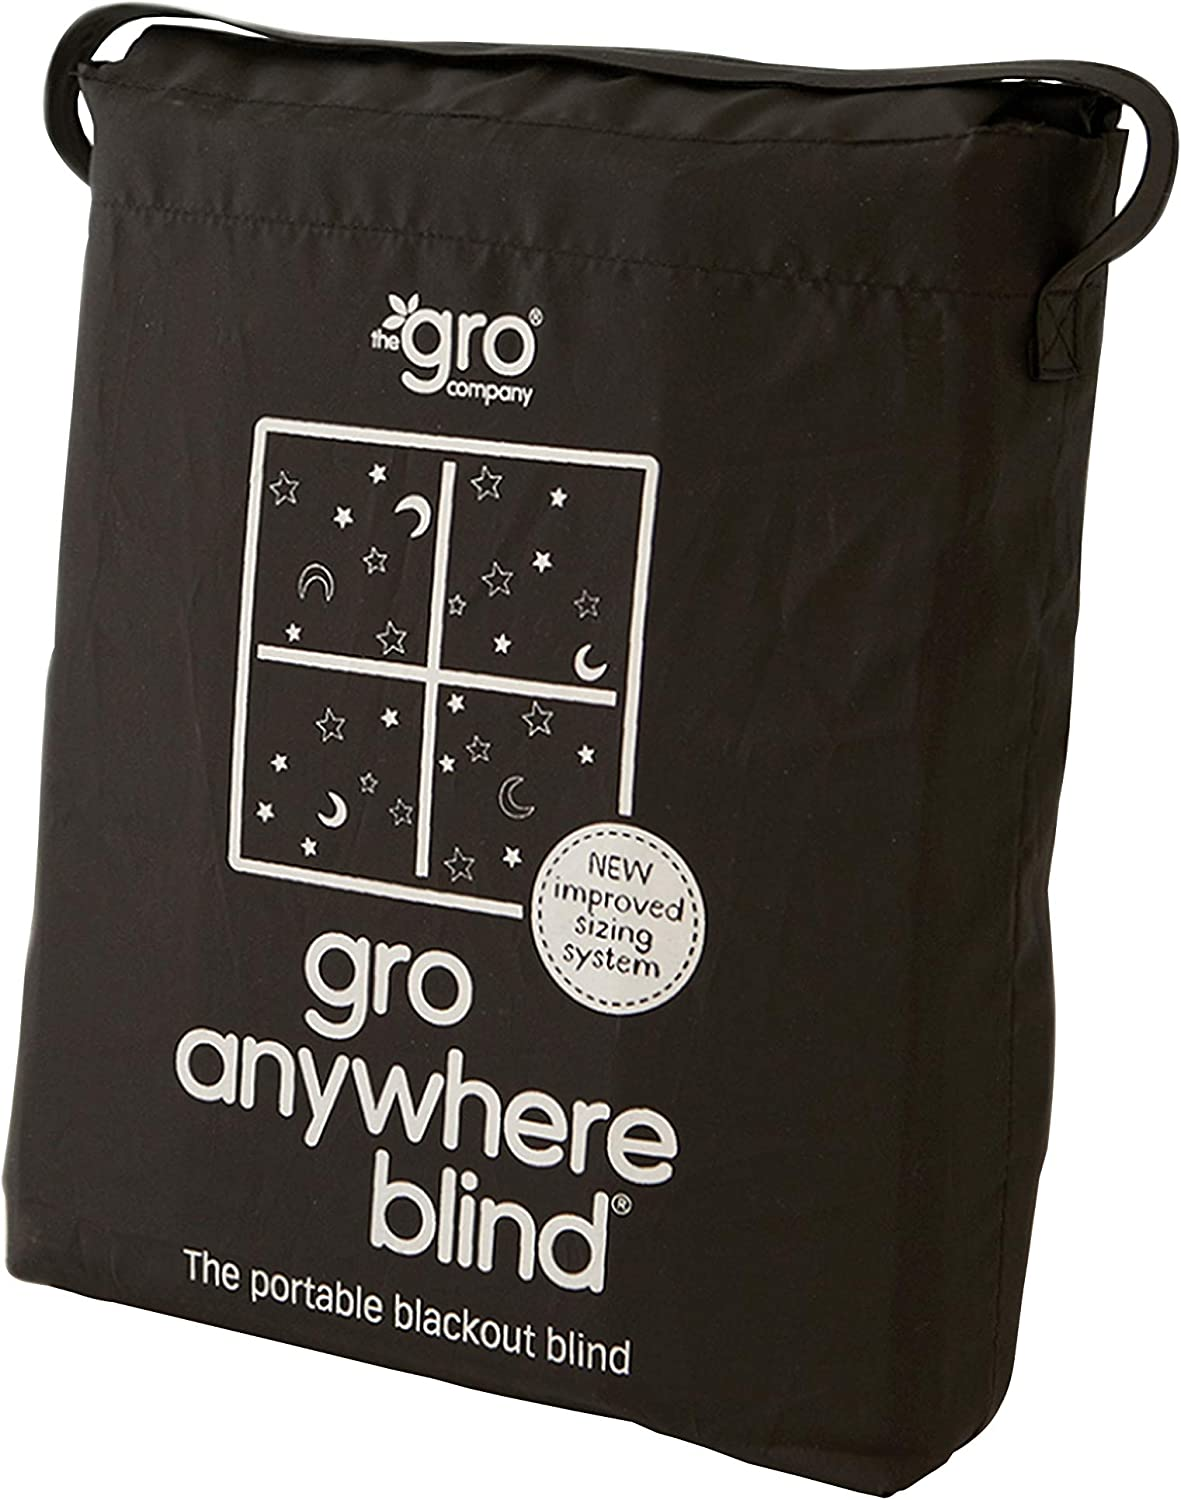 Gro Company GroAnywhere Portable Blackout Blind